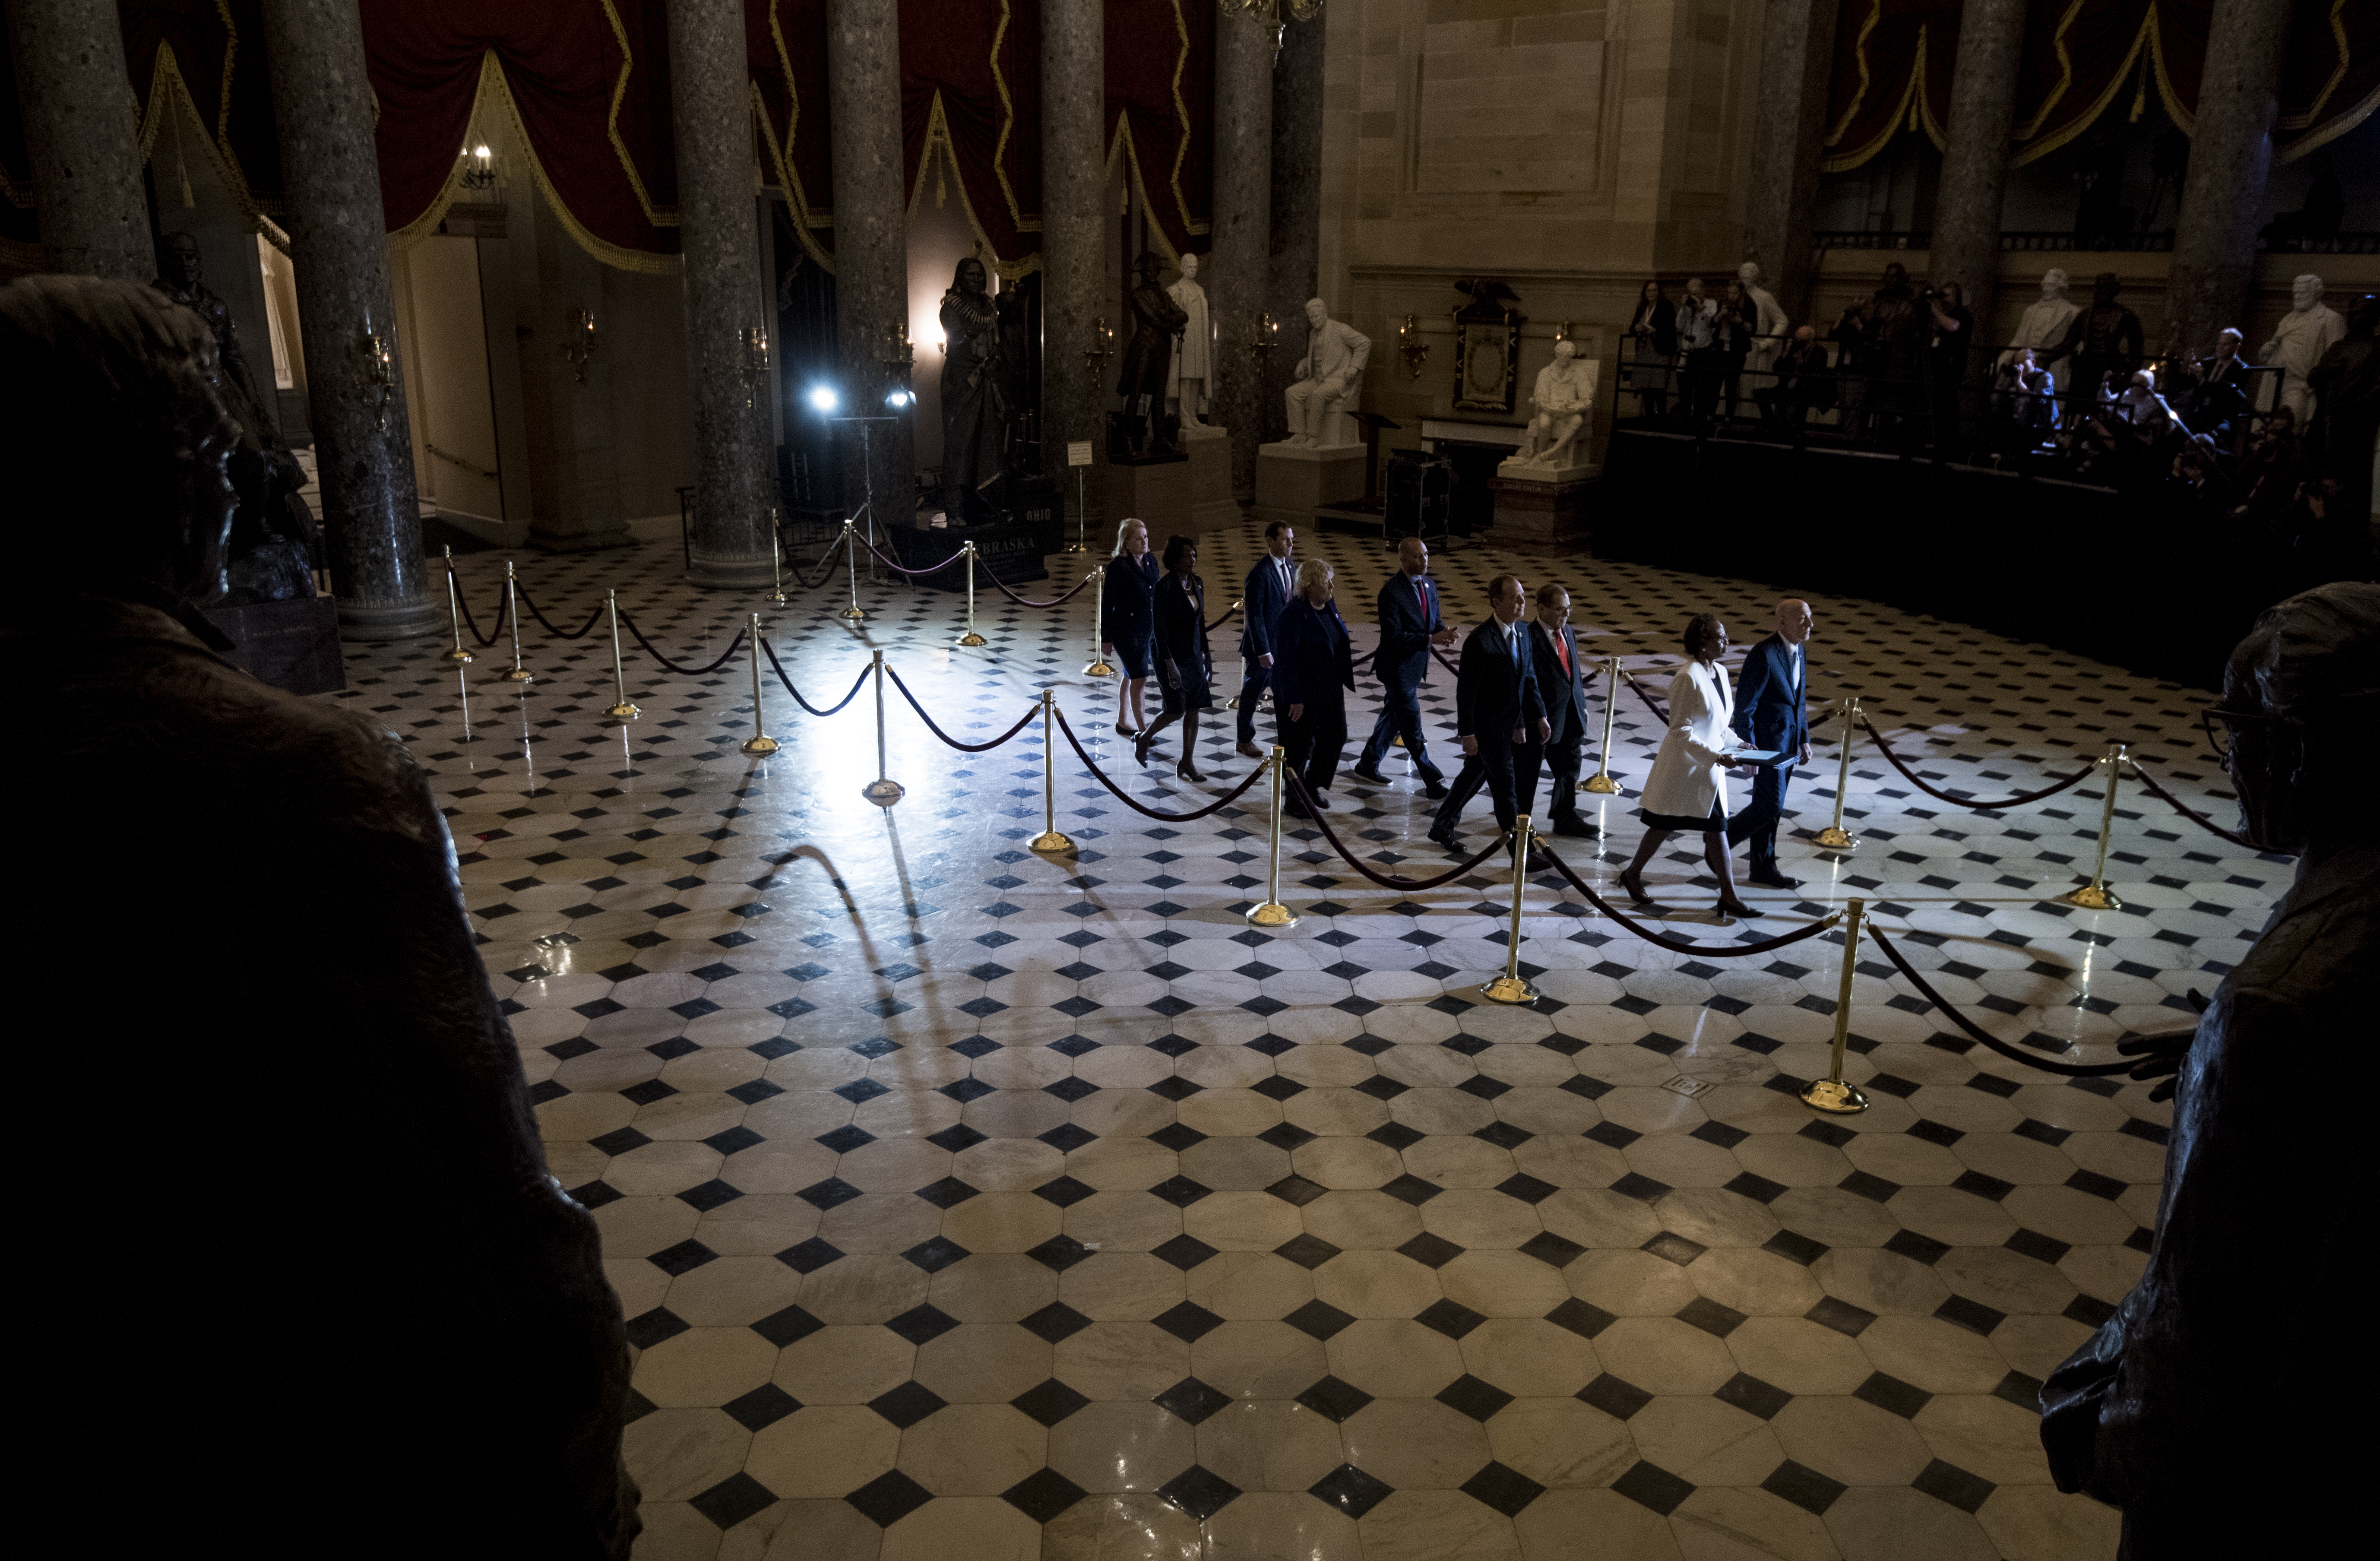 UNITED STATES - JANUARY 15: Sergeant at Arms of the U.S. House of Representatives Paul Irving and Clerk of the United States House of Representatives Cheryl Johnson lead the House managers through Statuary Hall to deliver the of the artciles of impeachment from the House to the Senate on Wednesday, Jan. 15, 2020. (Photo By Bill Clark/CQ Roll Call)